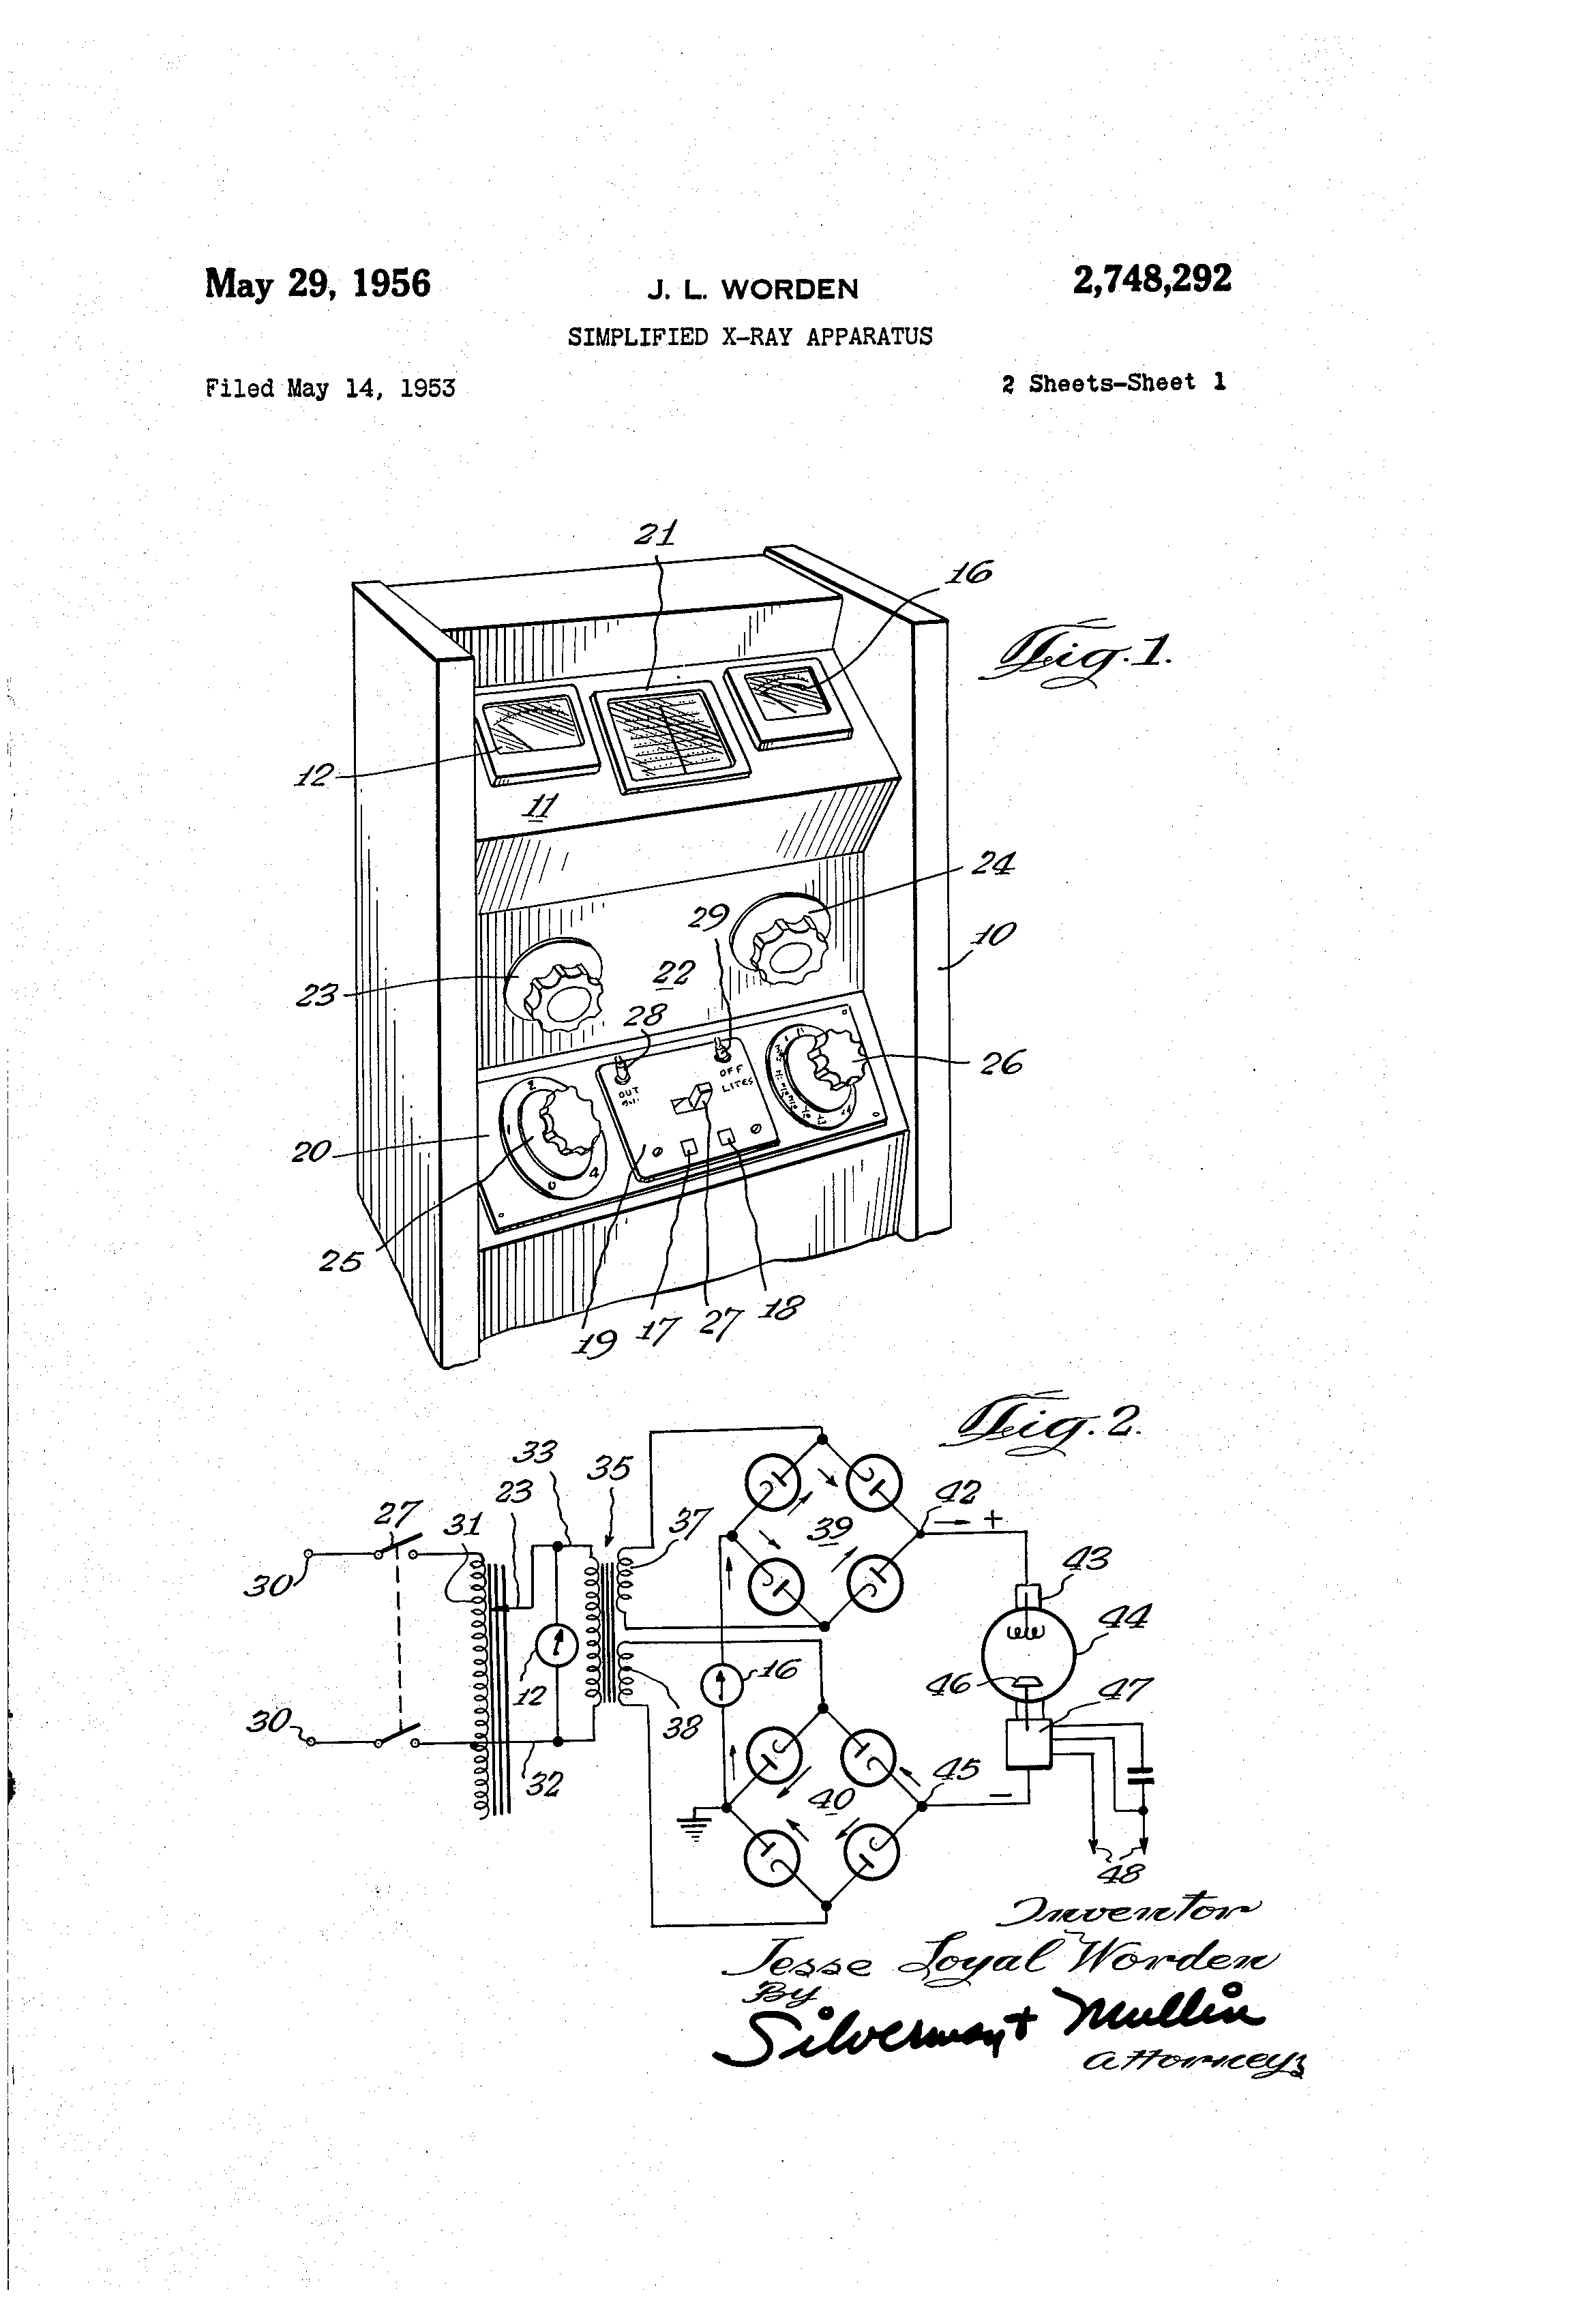 Patente Us2748292 Simplified X Ray Apparatus Google Patentes Knob And Tube Switch Wiring Diagram Patent Drawing